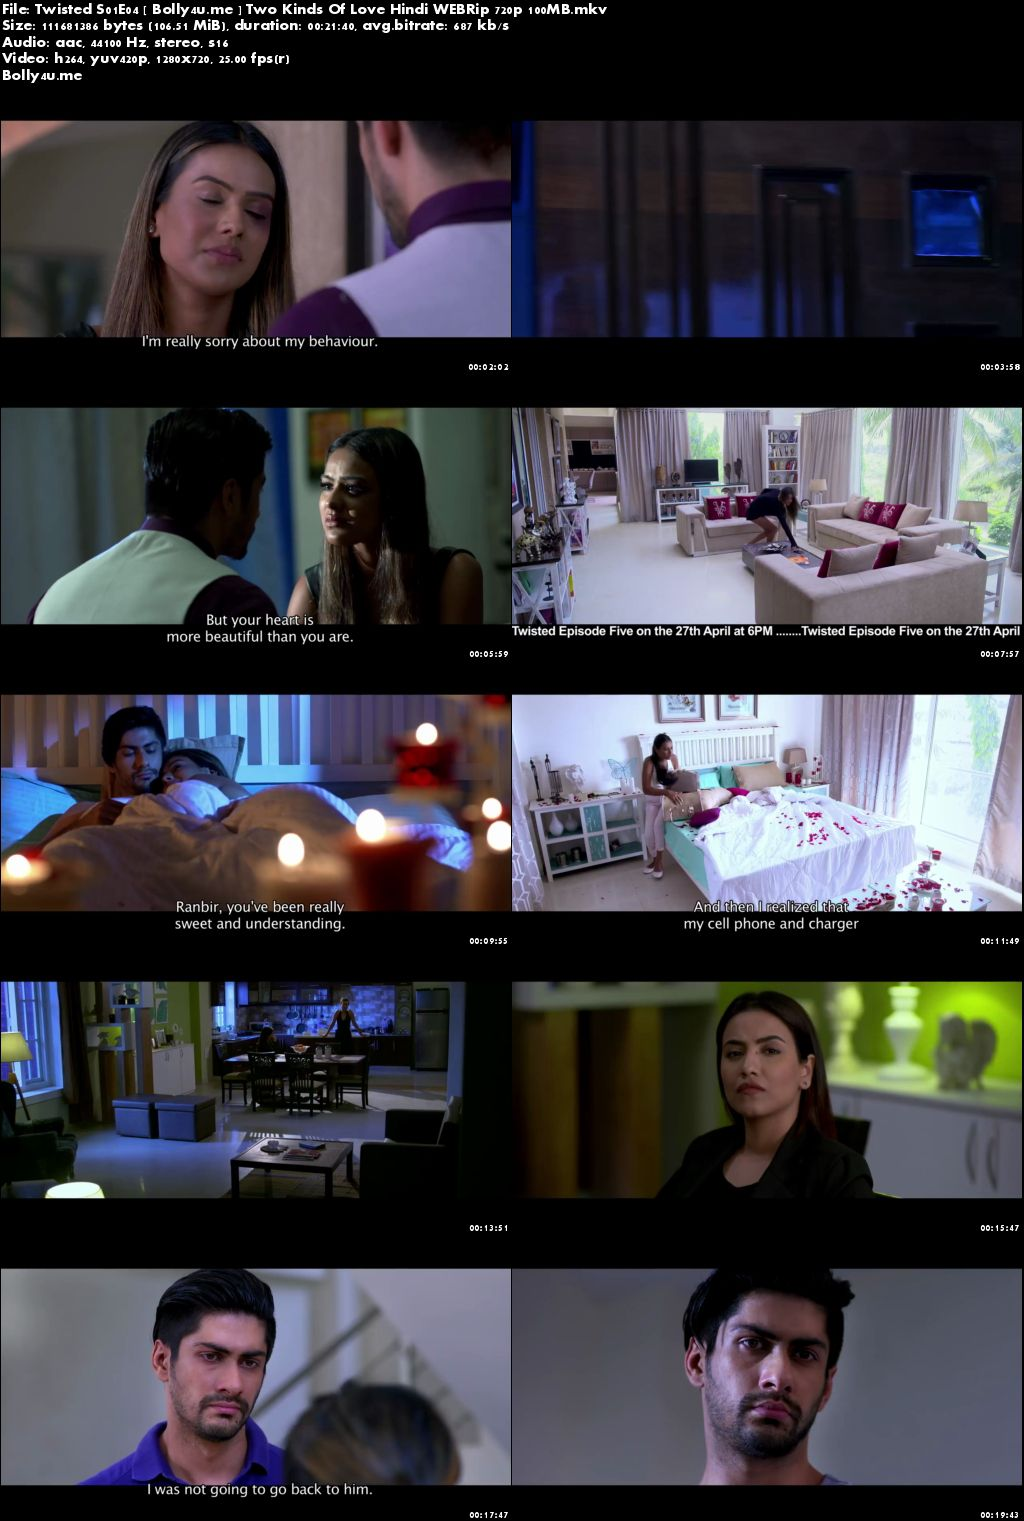 Twisted S01E04 Two Kinds Of Love WEBRip 100MB Hindi 720p Download